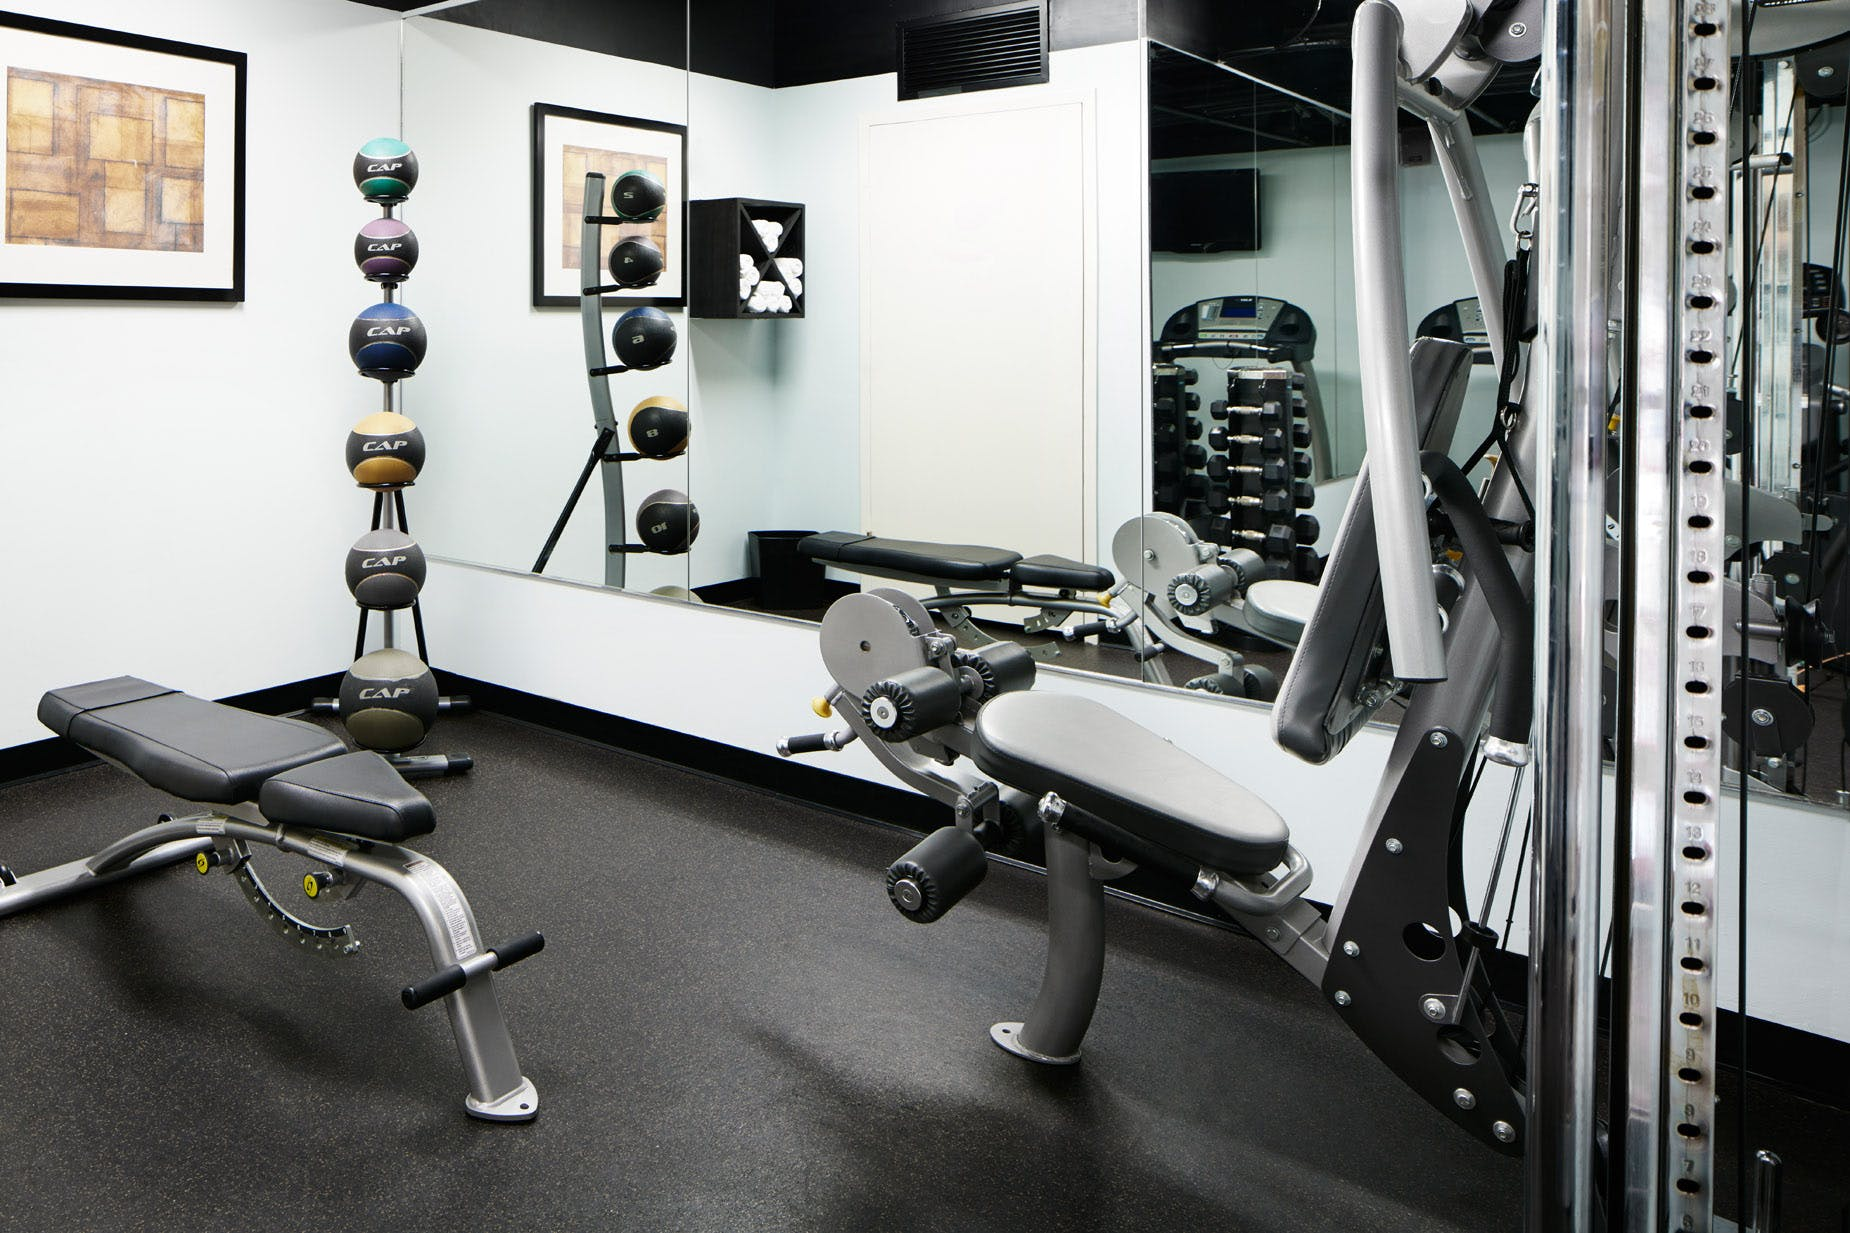 Cardio Equipment in the Fitness Center